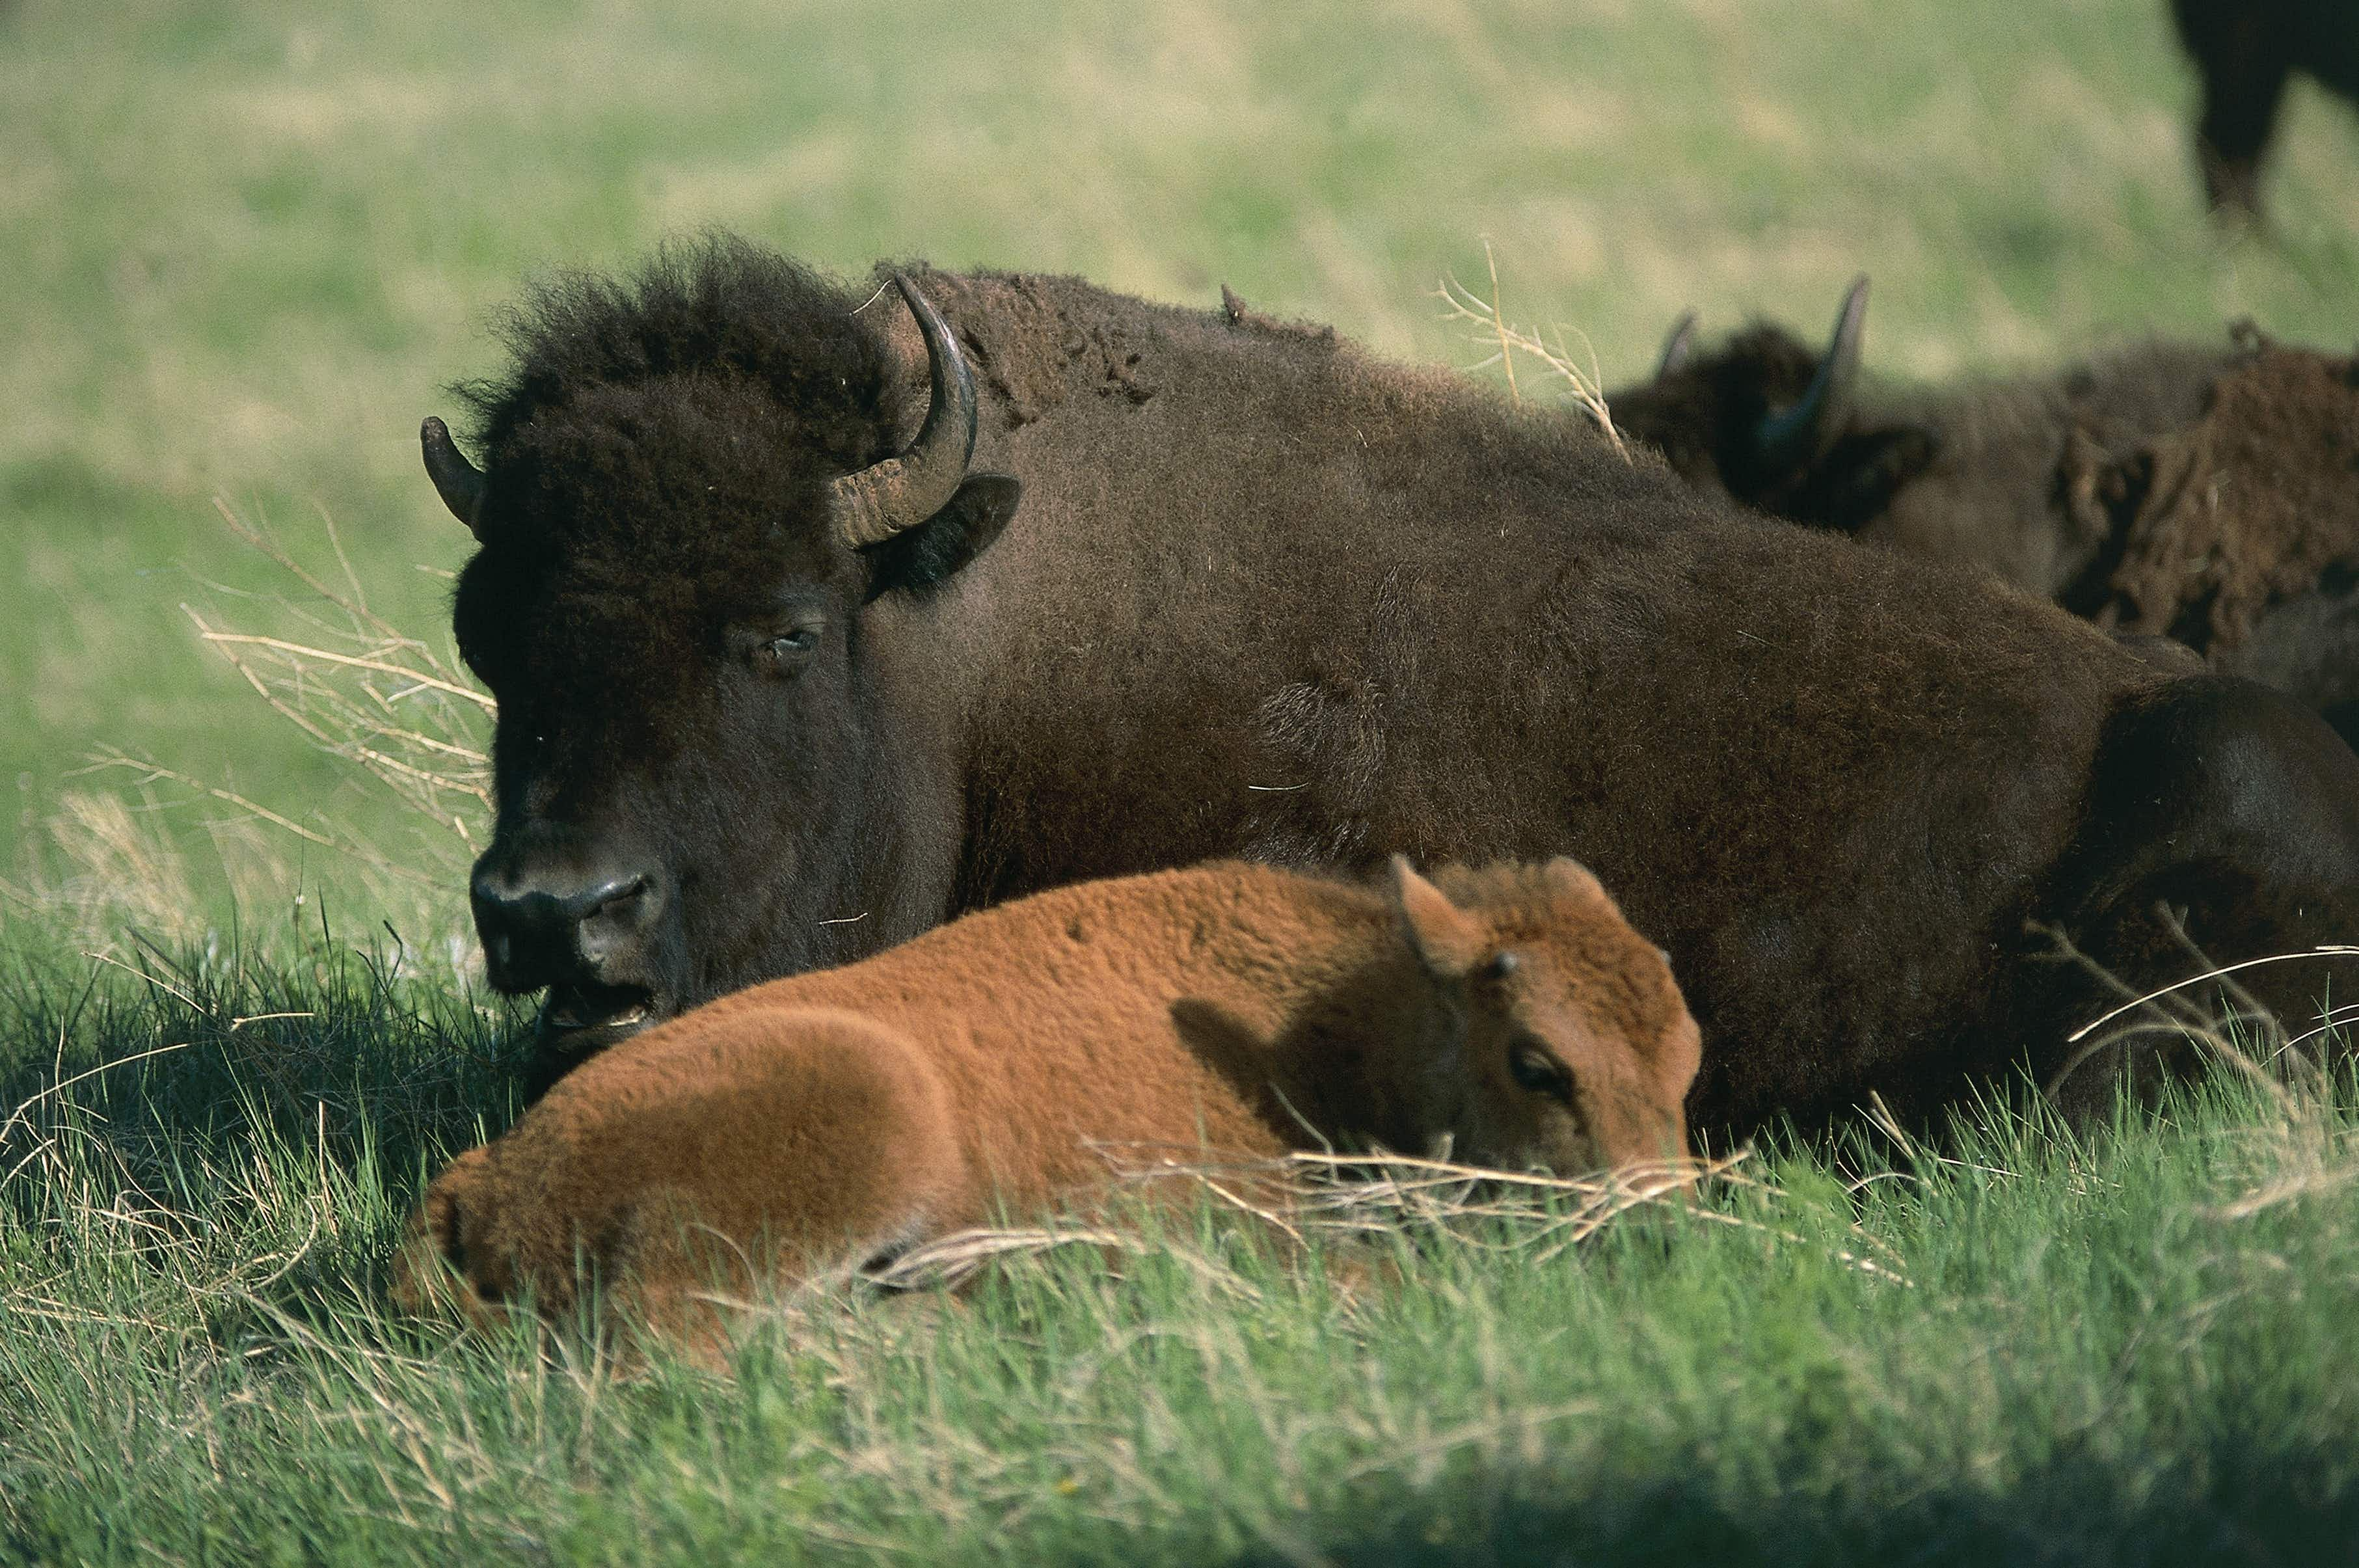 Now is the best time to spot adorable bison calves in South Dakota